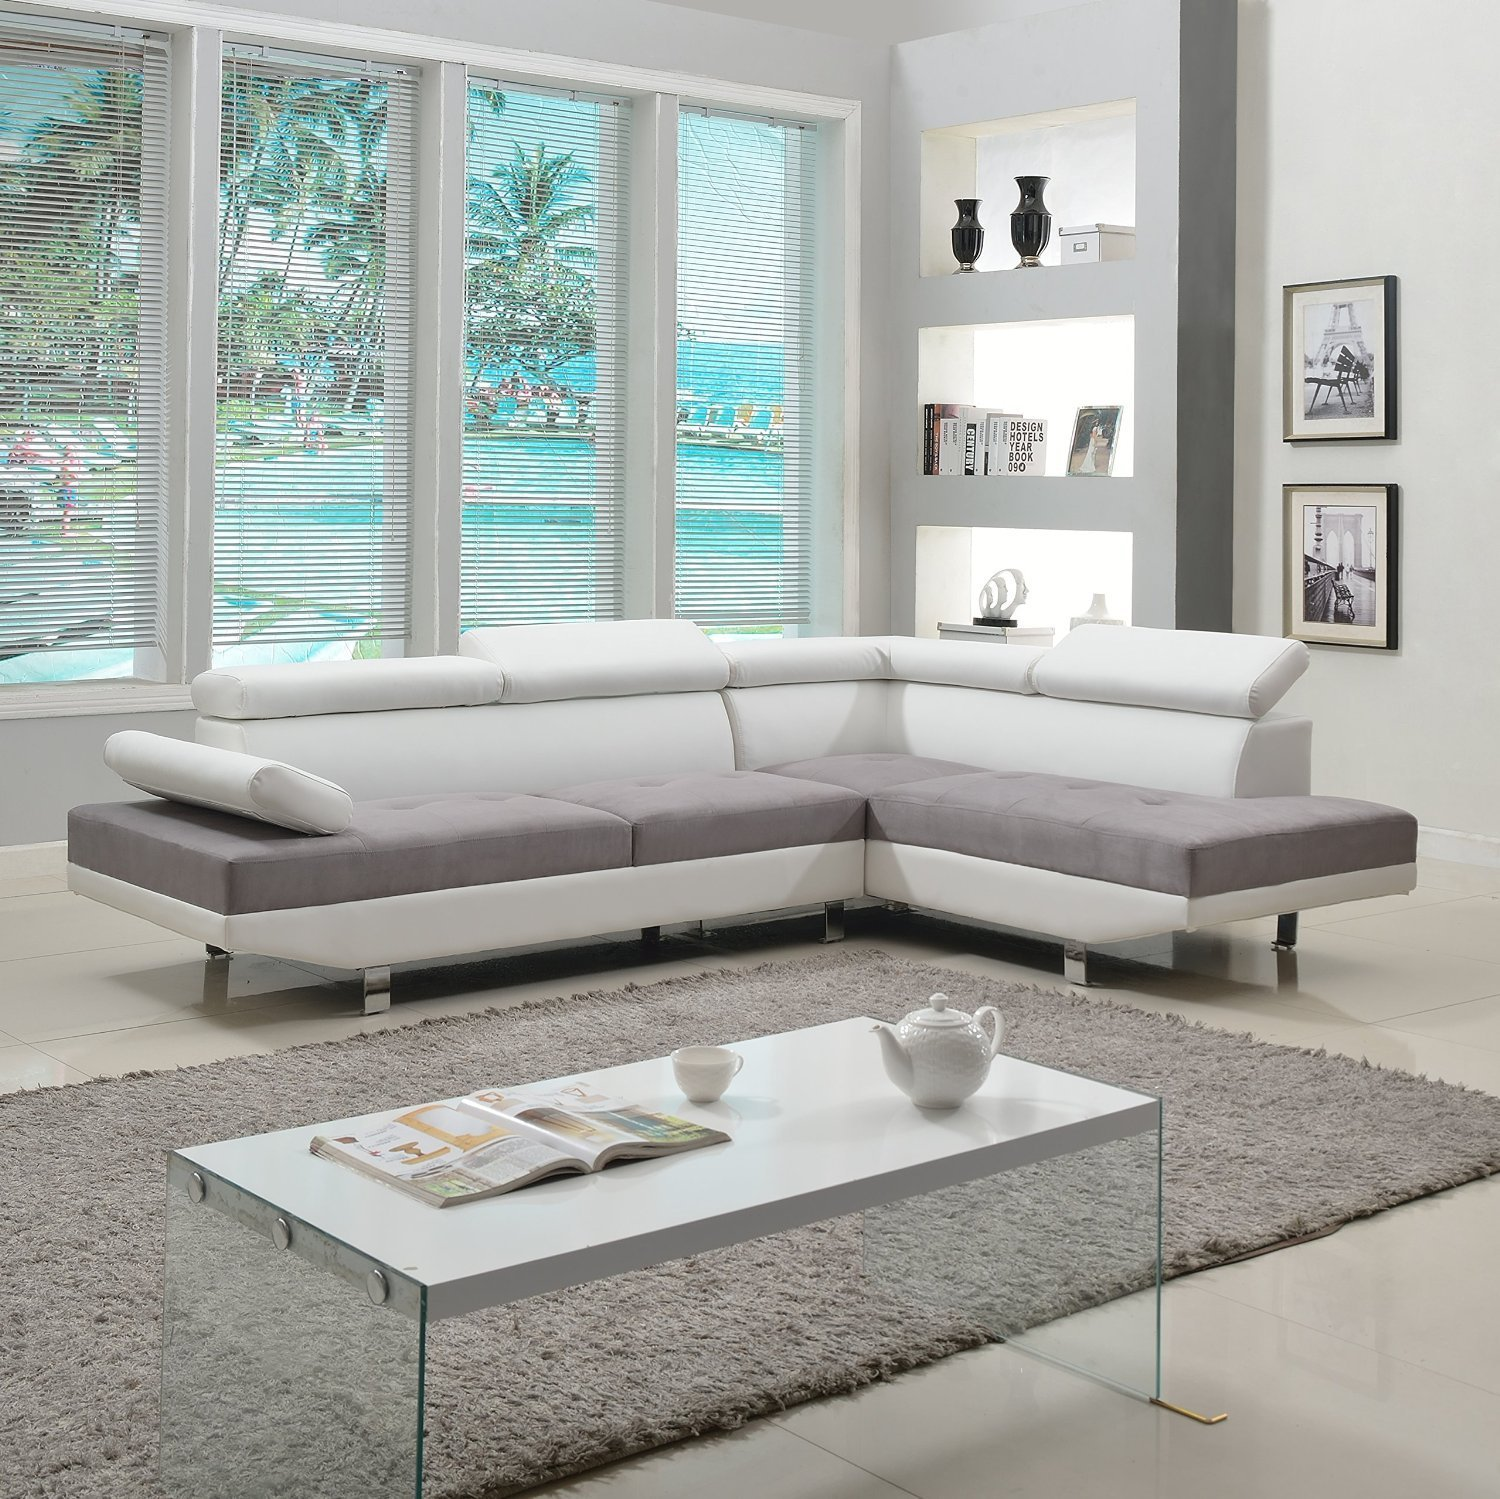 Modern living room furniture review find the best one for Best modern furniture